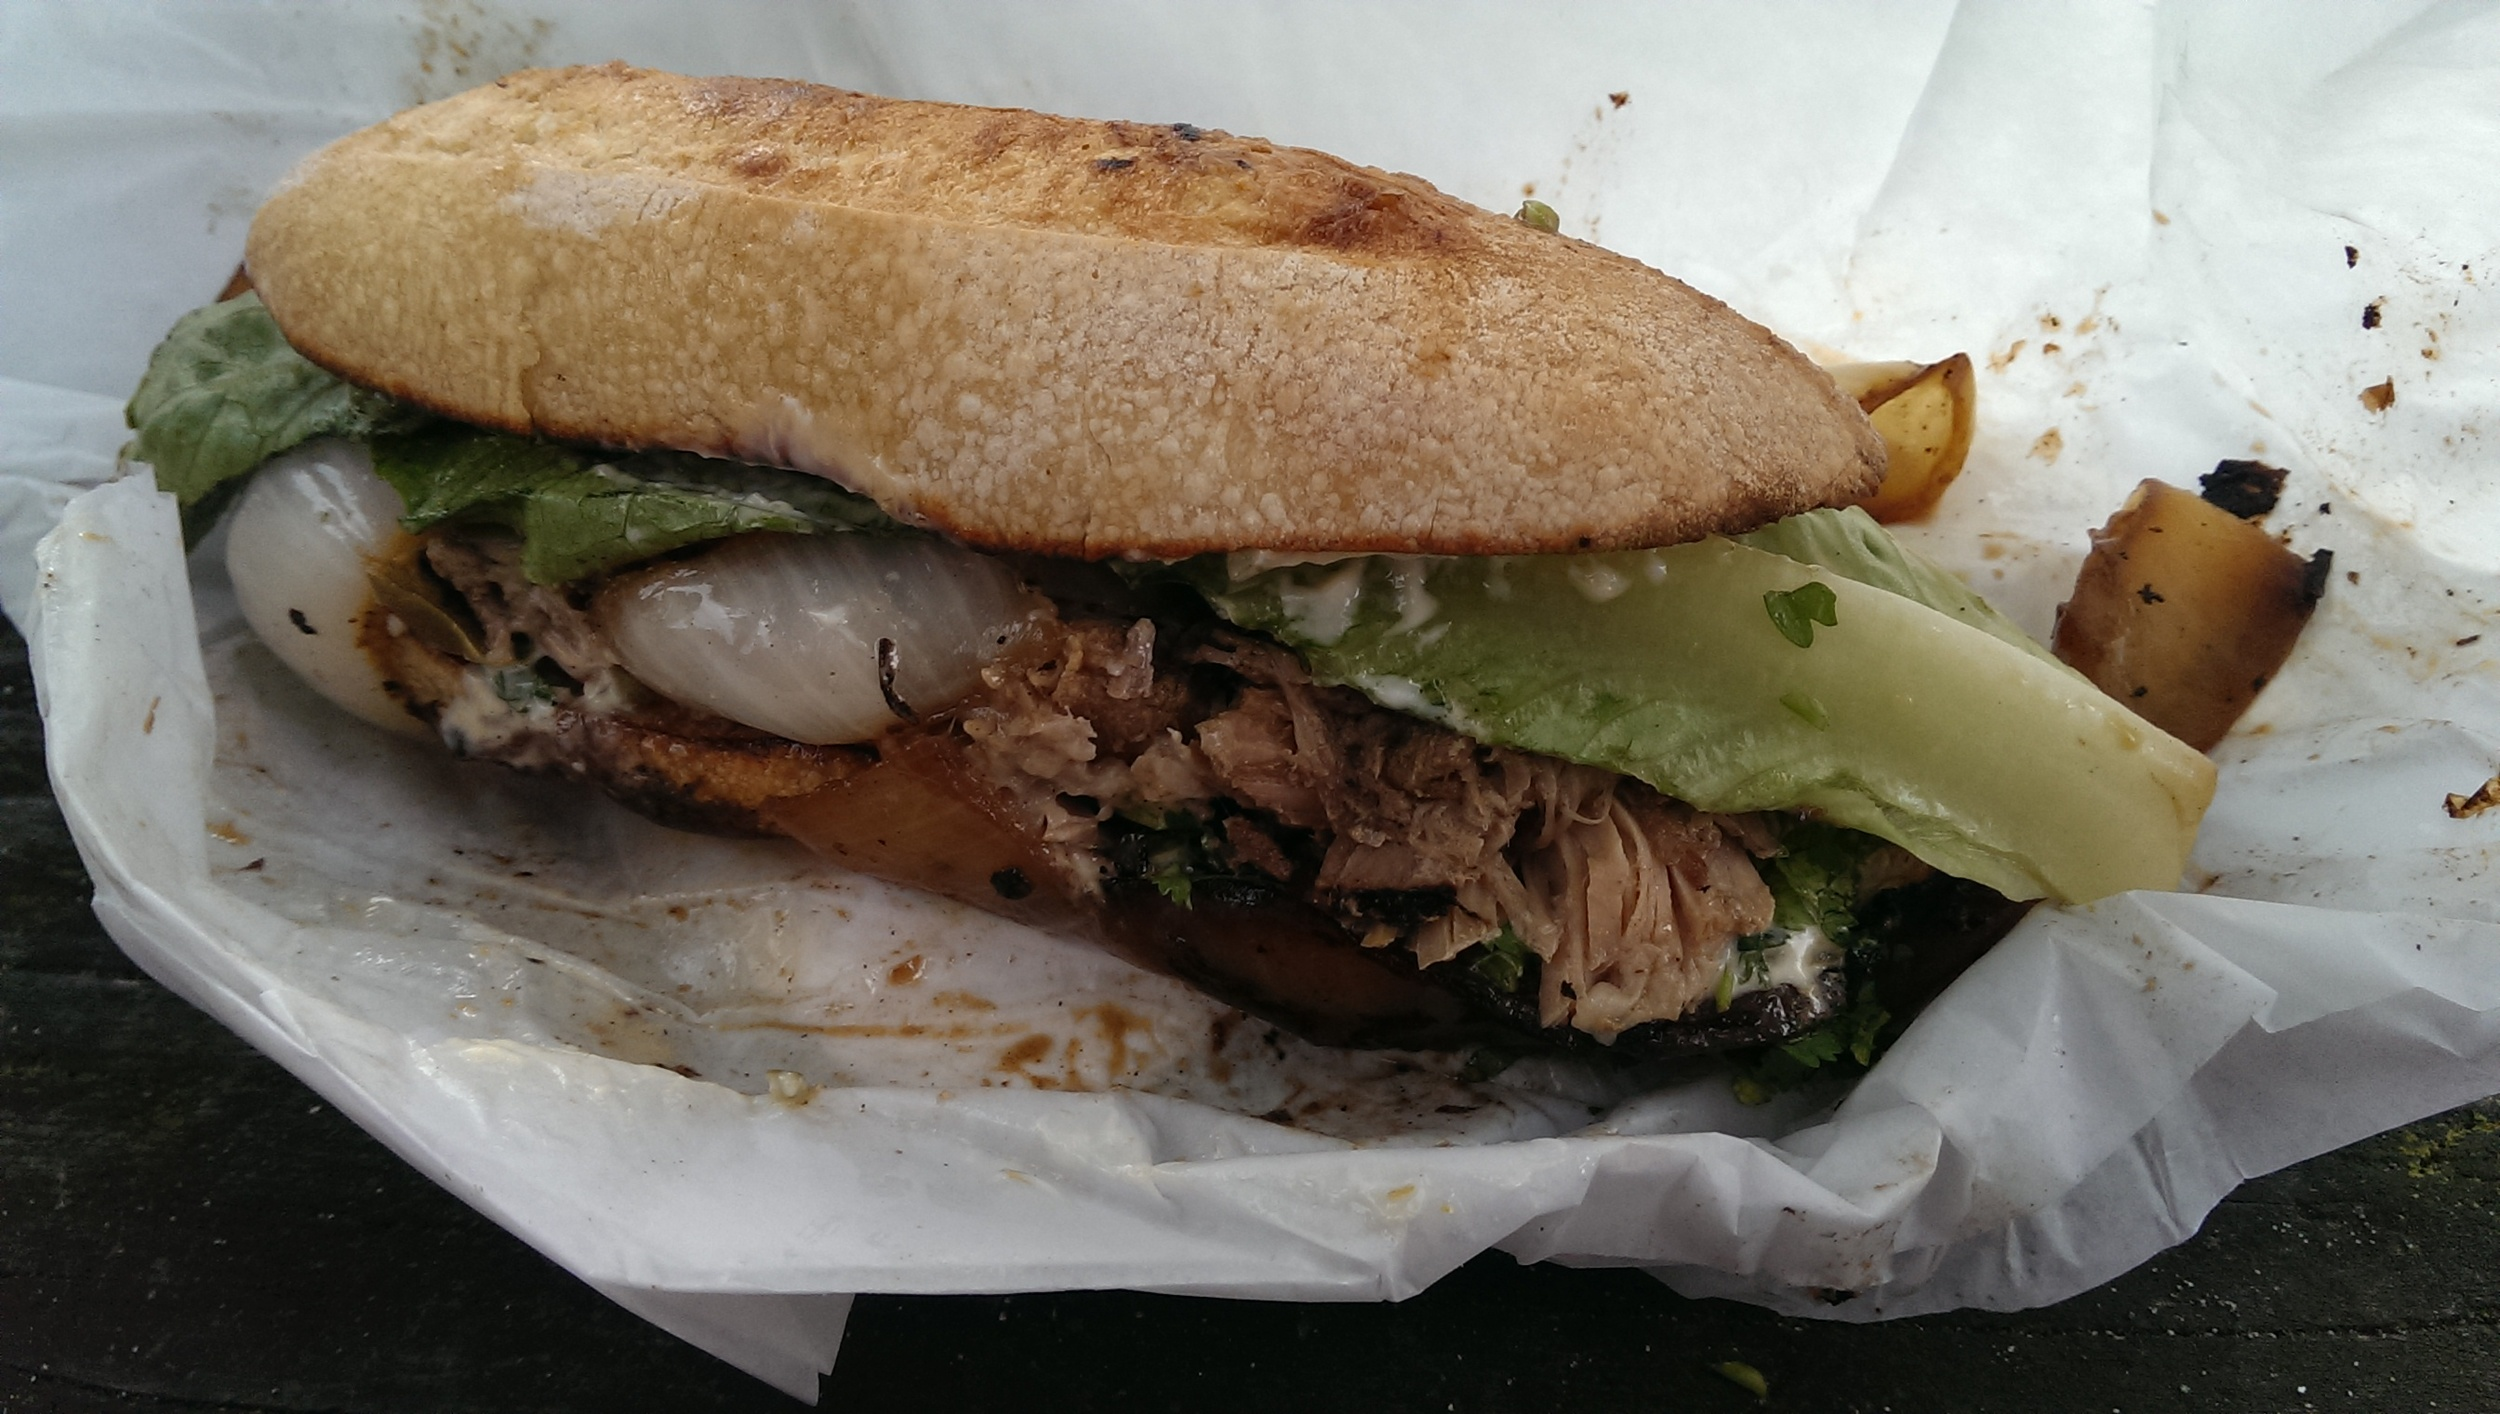 29 - Pork Sandwich from Paseo